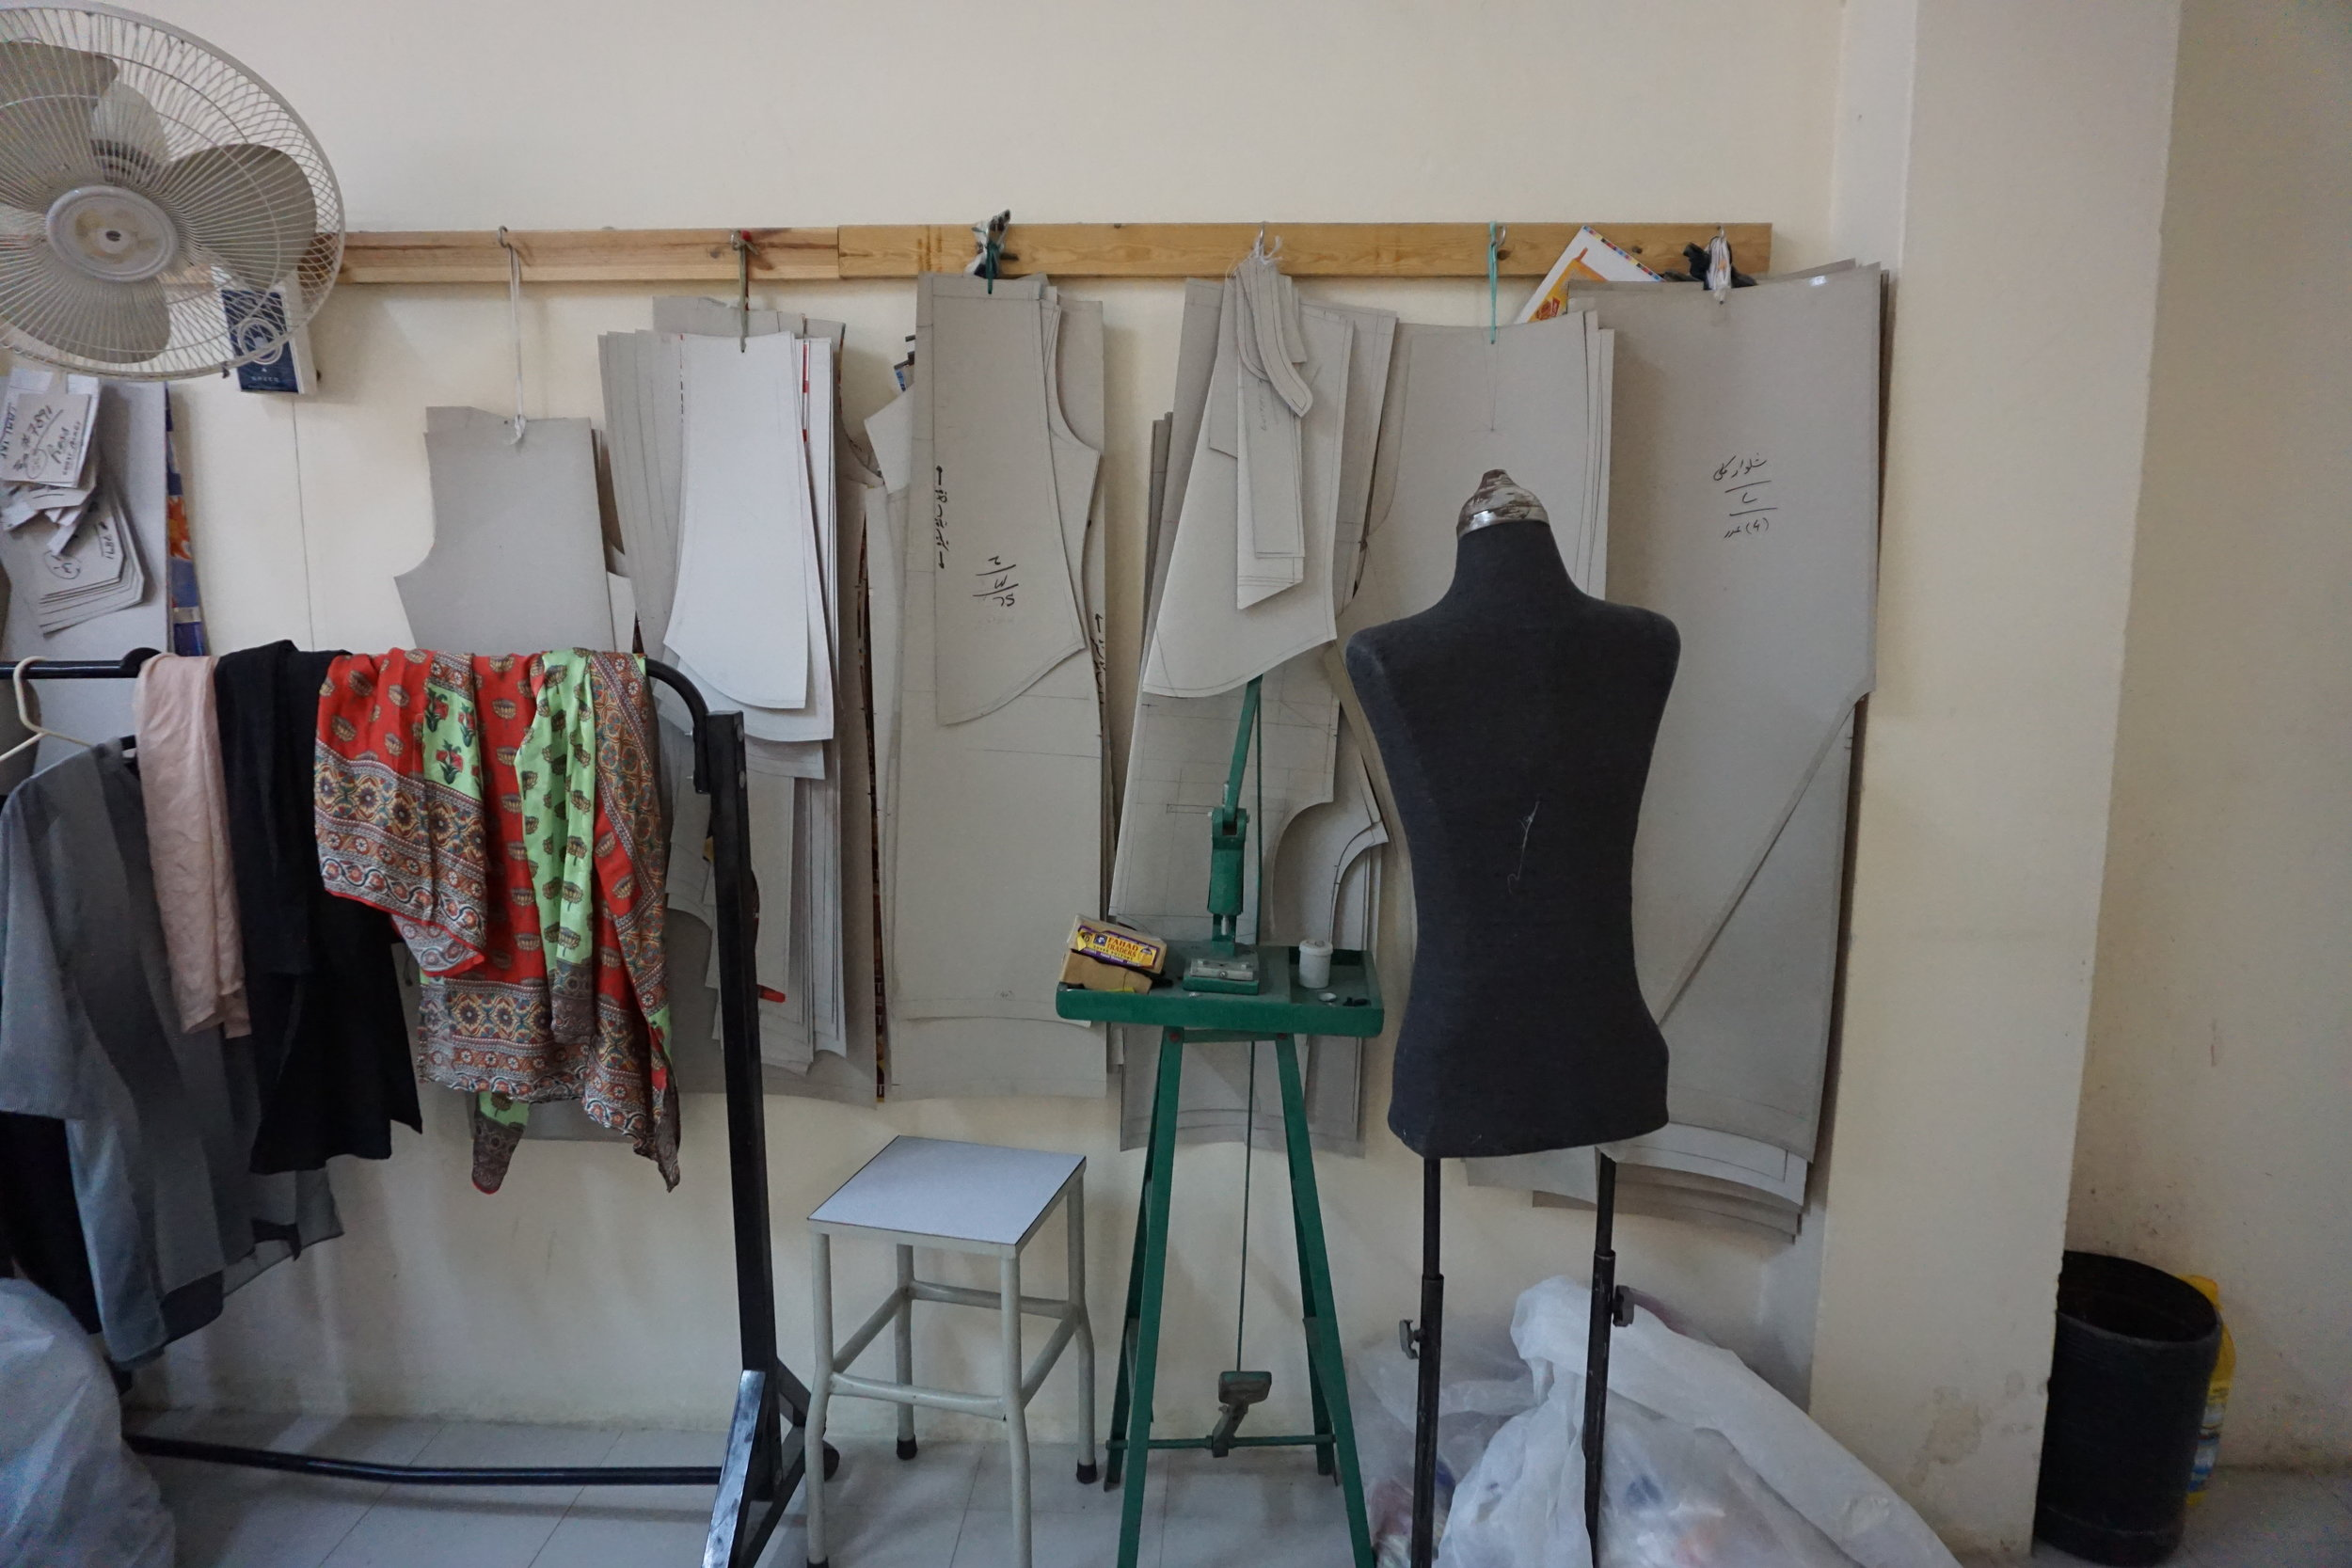 sukise_sukisestyle_pakistani_workshop_ethicalfashion_ethicallabor_sukiseteam_karachi_pakistan.JPG